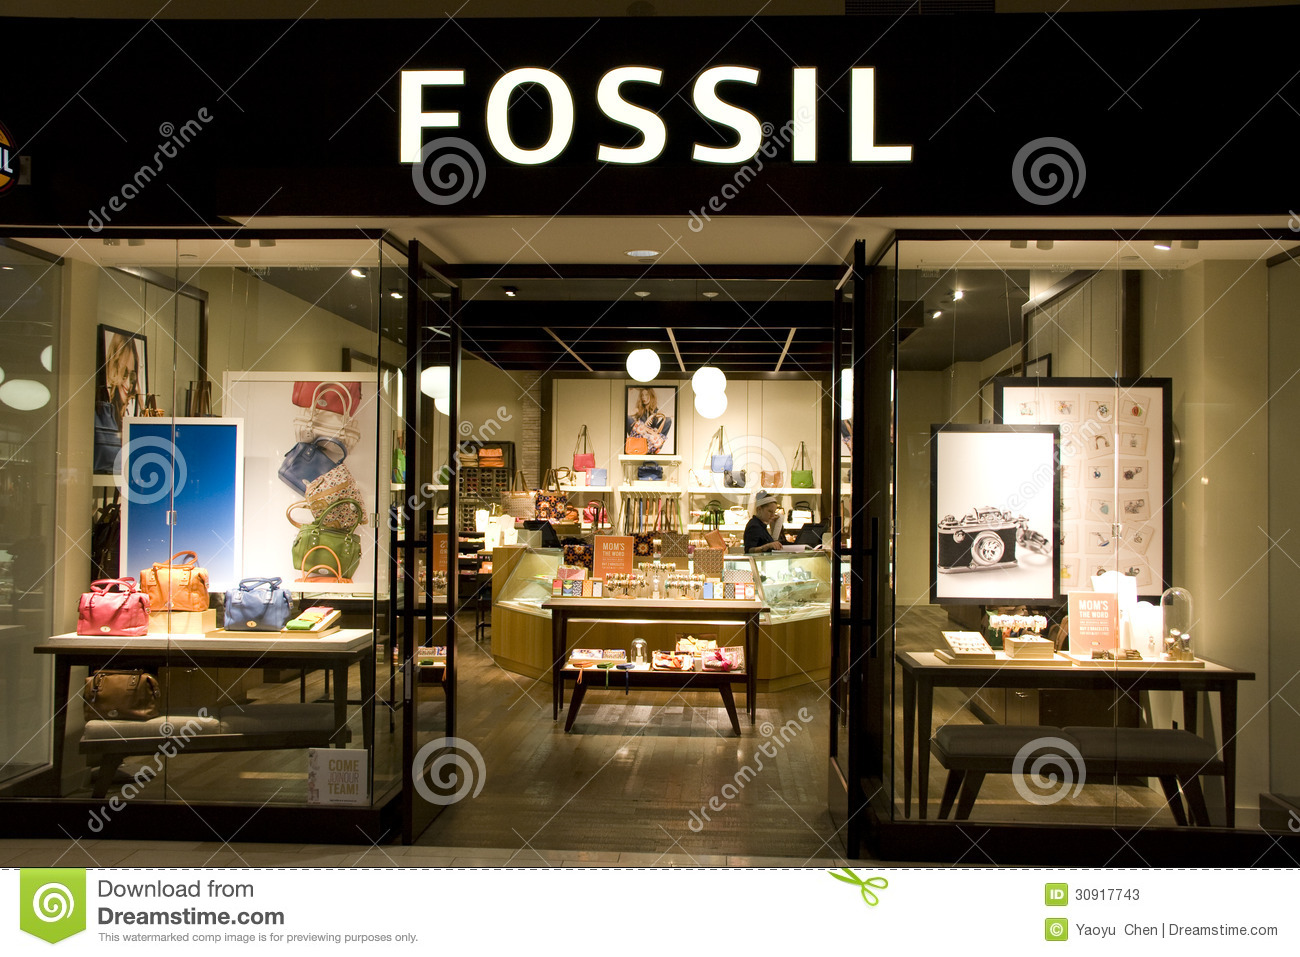 Fossil fashion store editorial stock photo. Image of women